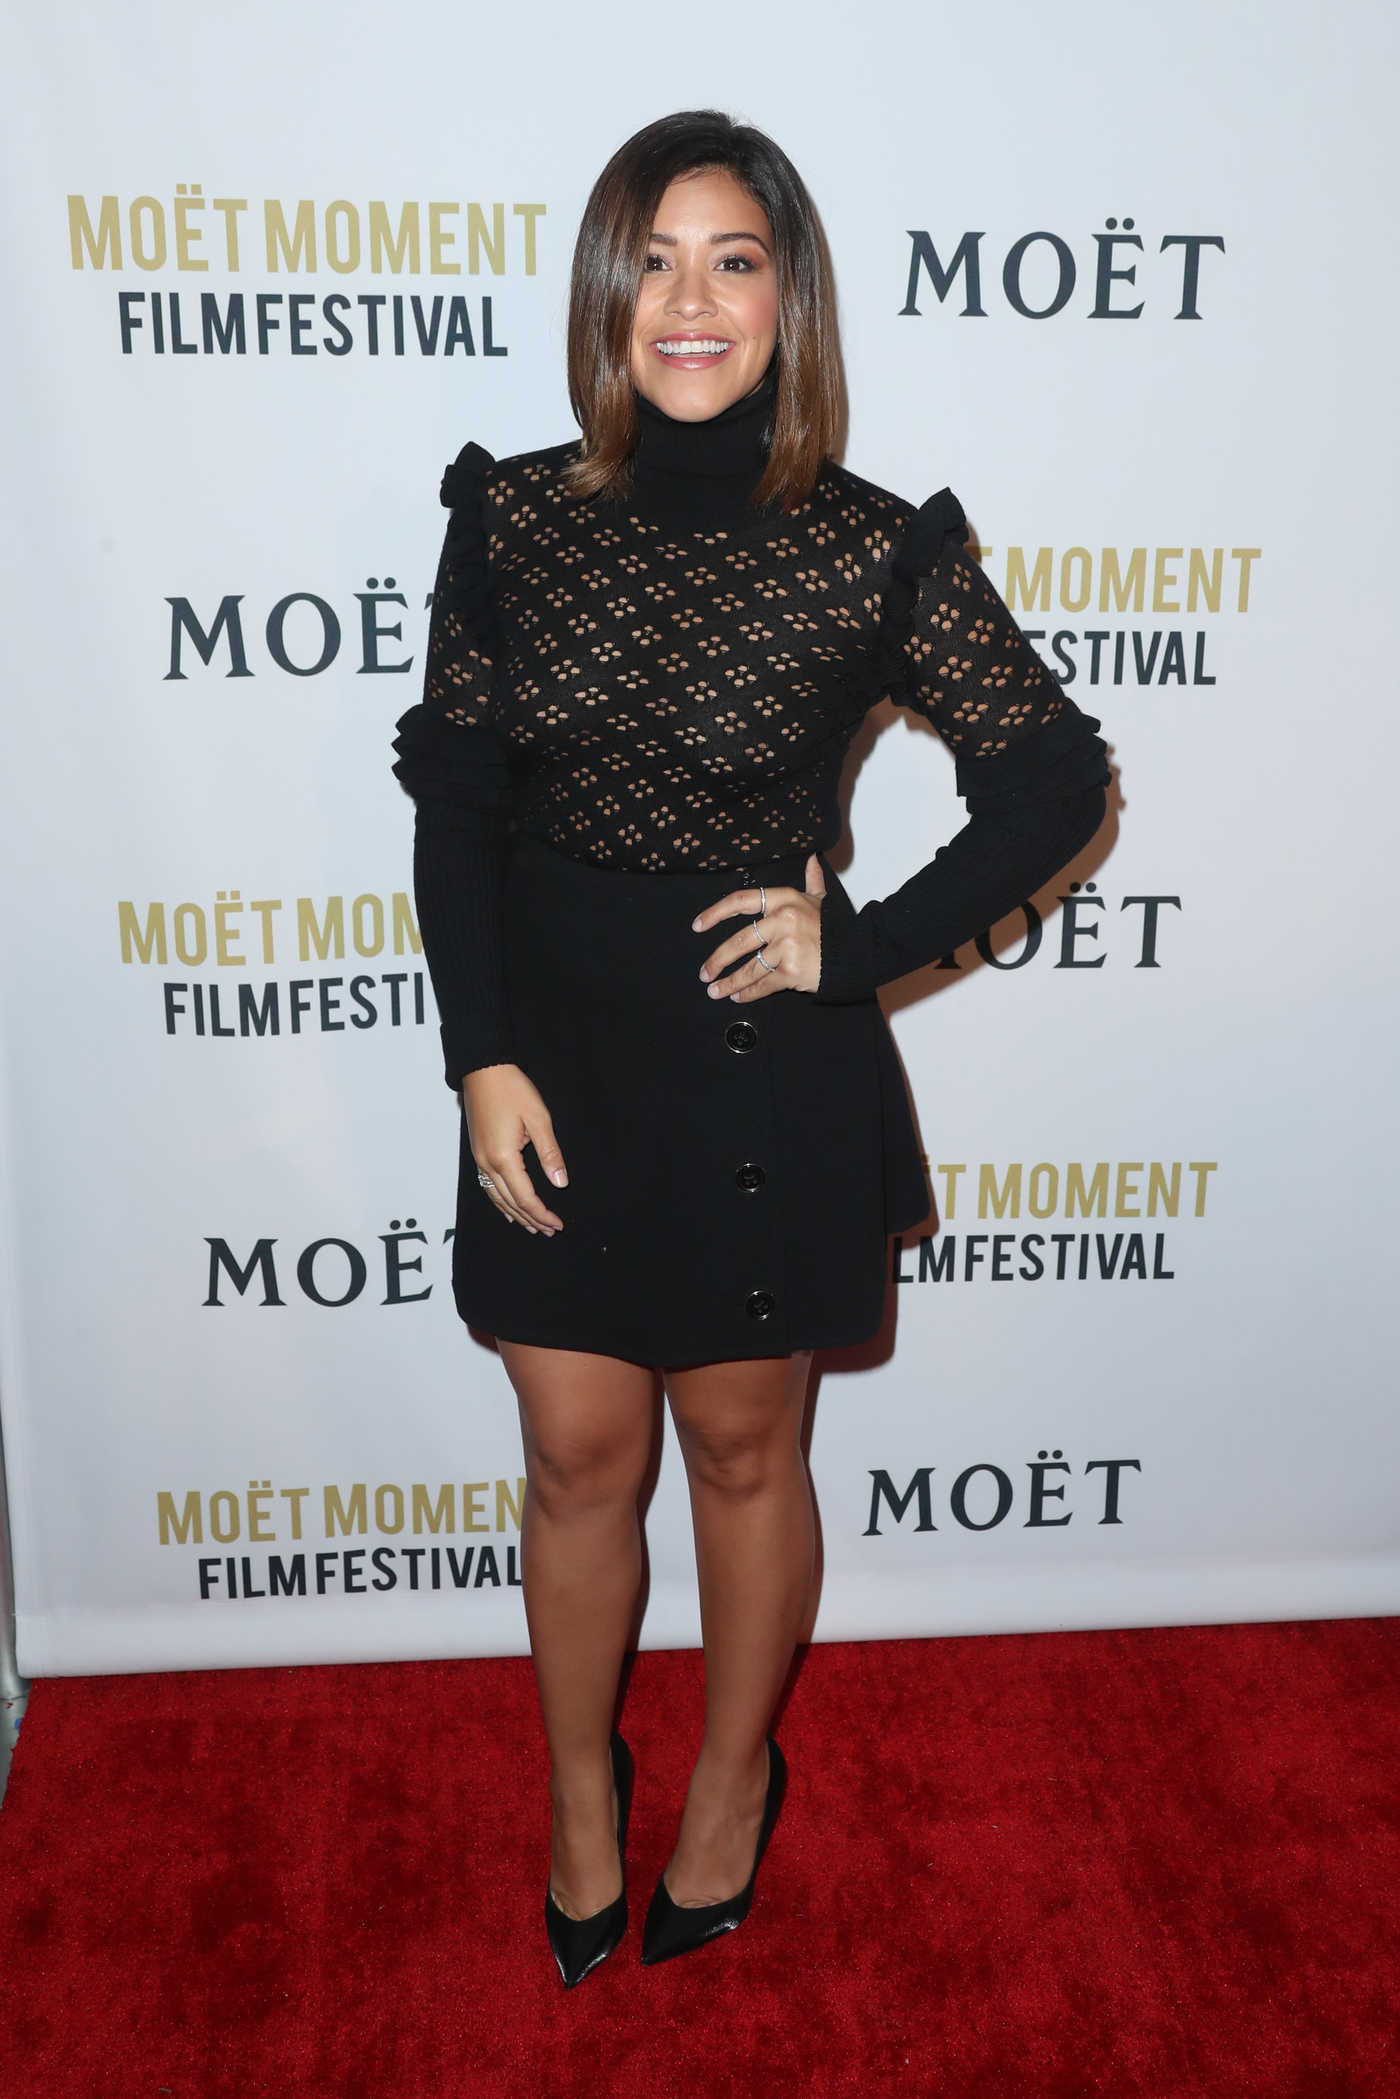 Gina Rodriguez at the 2nd Annual Moet Moment Film Festival in Los Angeles 01/04/2017